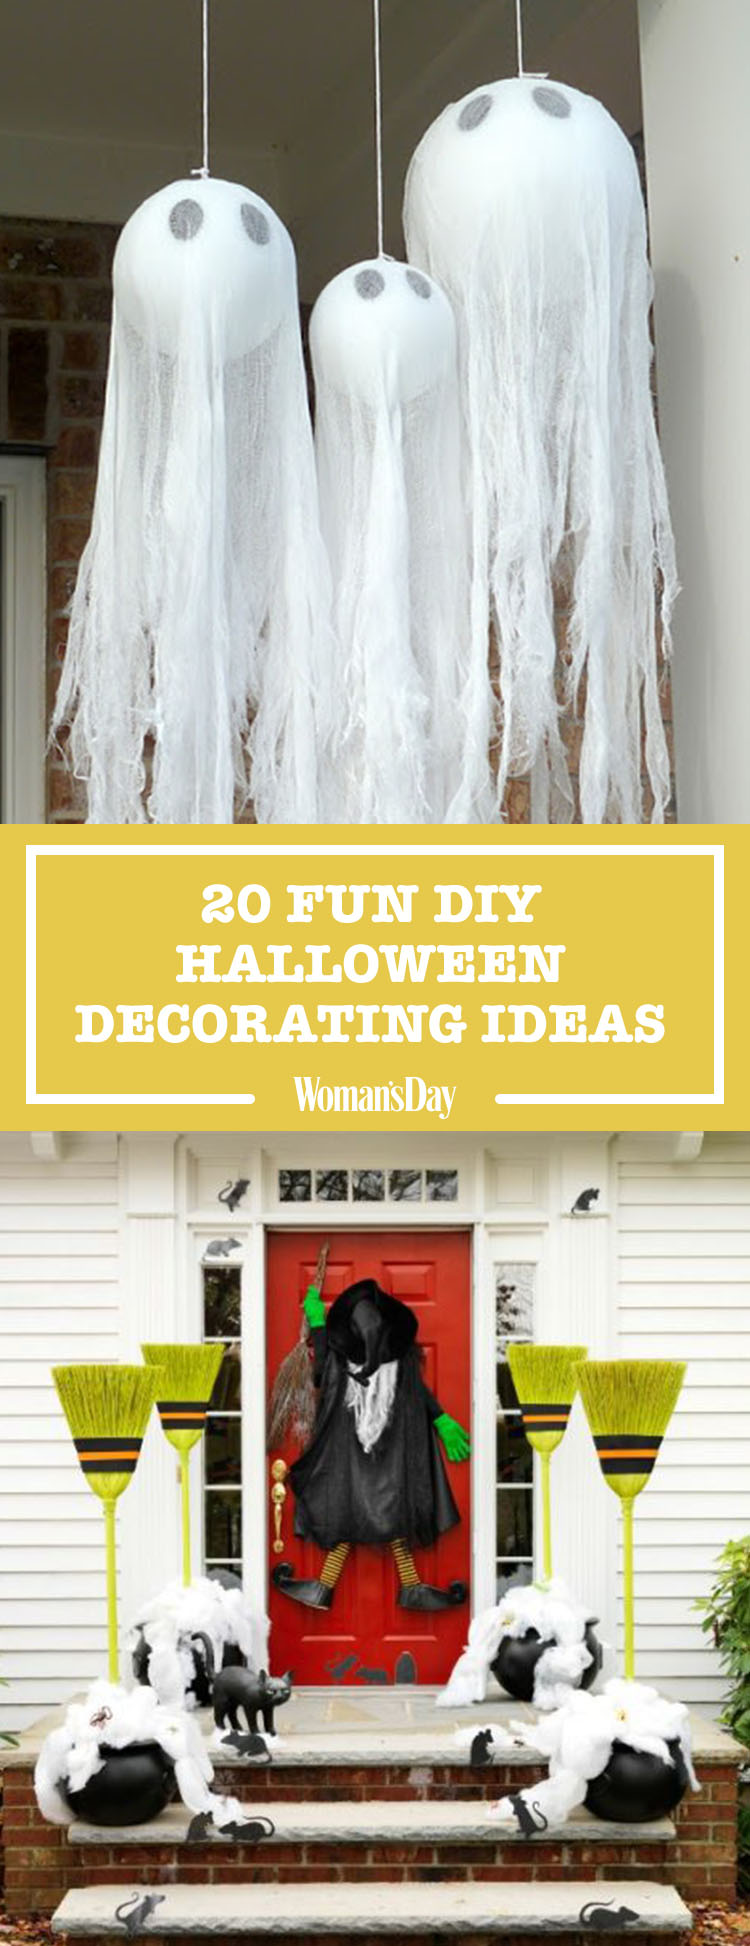 Halloween diy decor - 30 Easy Diy Halloween Decoration Ideas Homemade Halloween Decor Projects